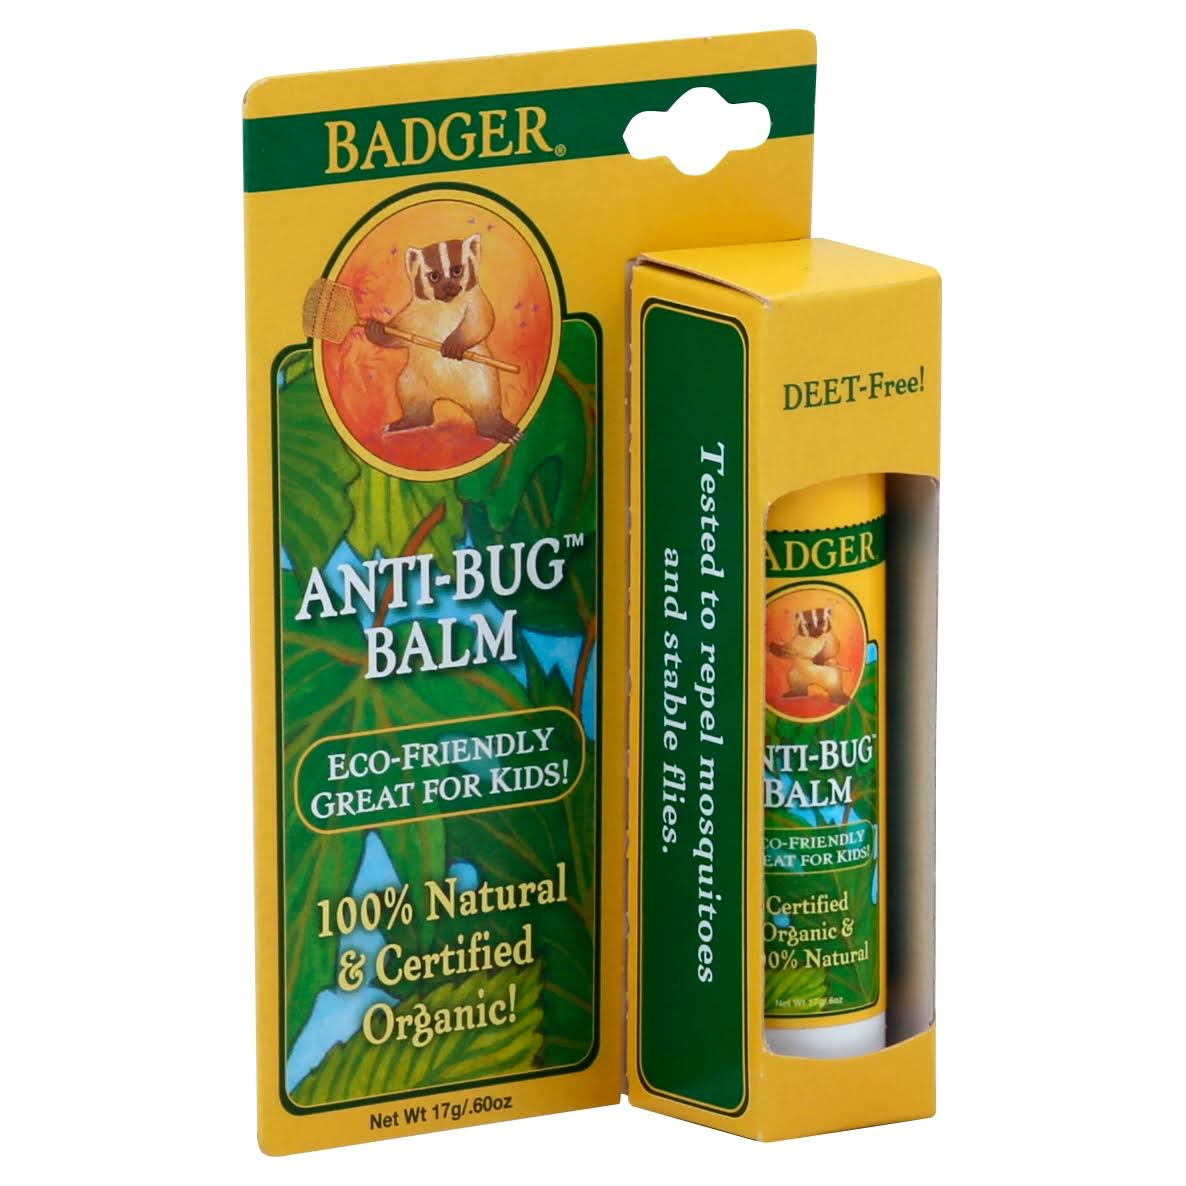 Badger Company Anti-bug Balm - 0.60oz